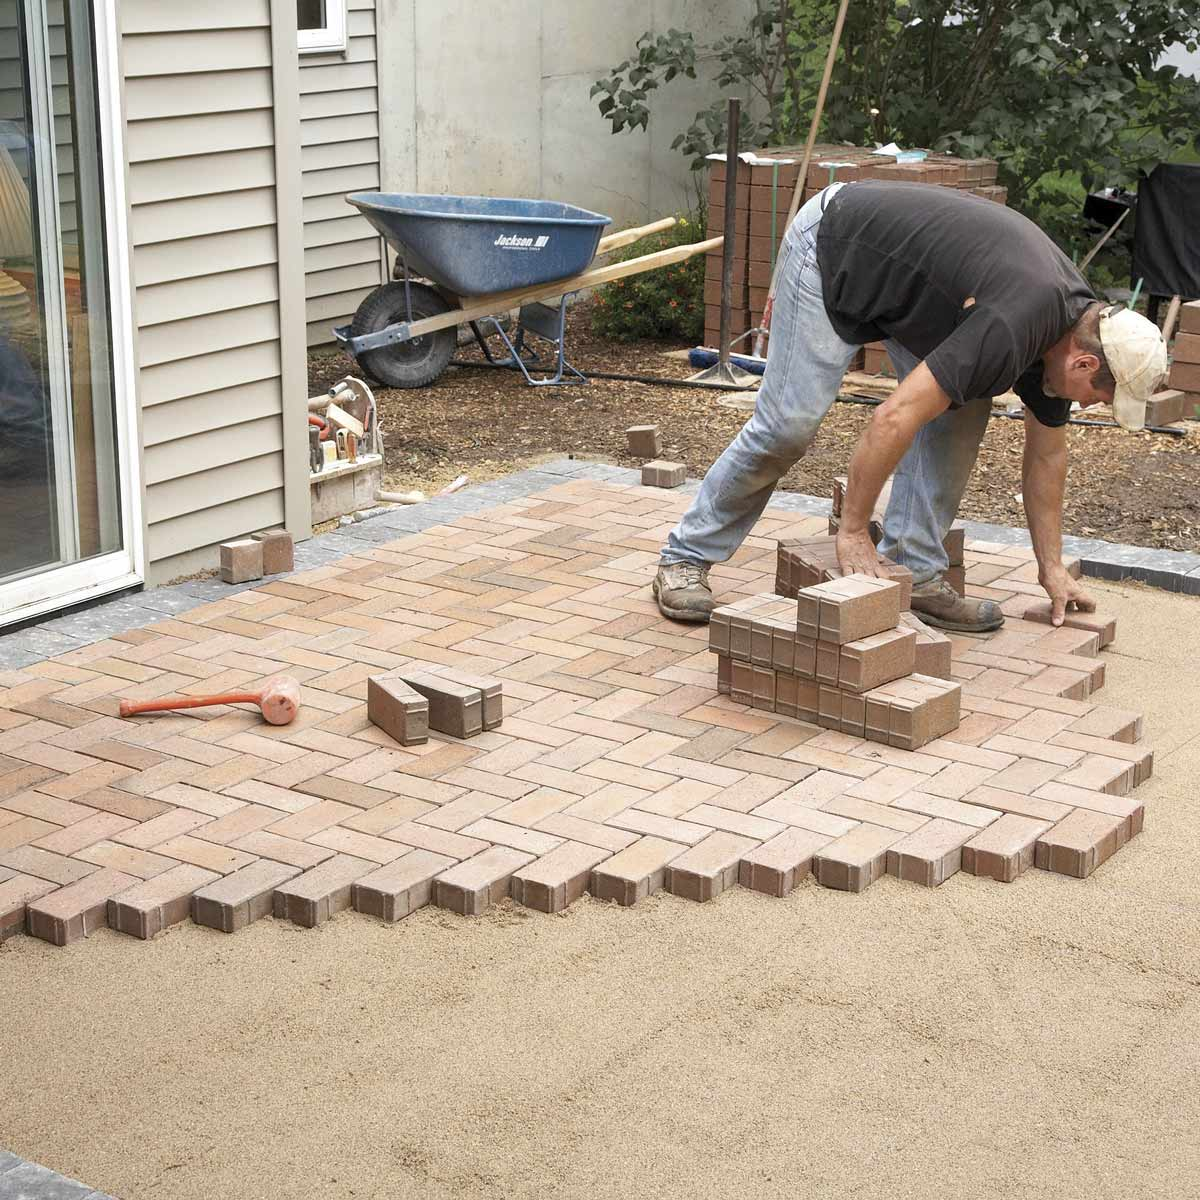 Pavers-Dallas TX Professional Landscapers & Outdoor Living Designs-We offer Landscape Design, Outdoor Patios & Pergolas, Outdoor Living Spaces, Stonescapes, Residential & Commercial Landscaping, Irrigation Installation & Repairs, Drainage Systems, Landscape Lighting, Outdoor Living Spaces, Tree Service, Lawn Service, and more.